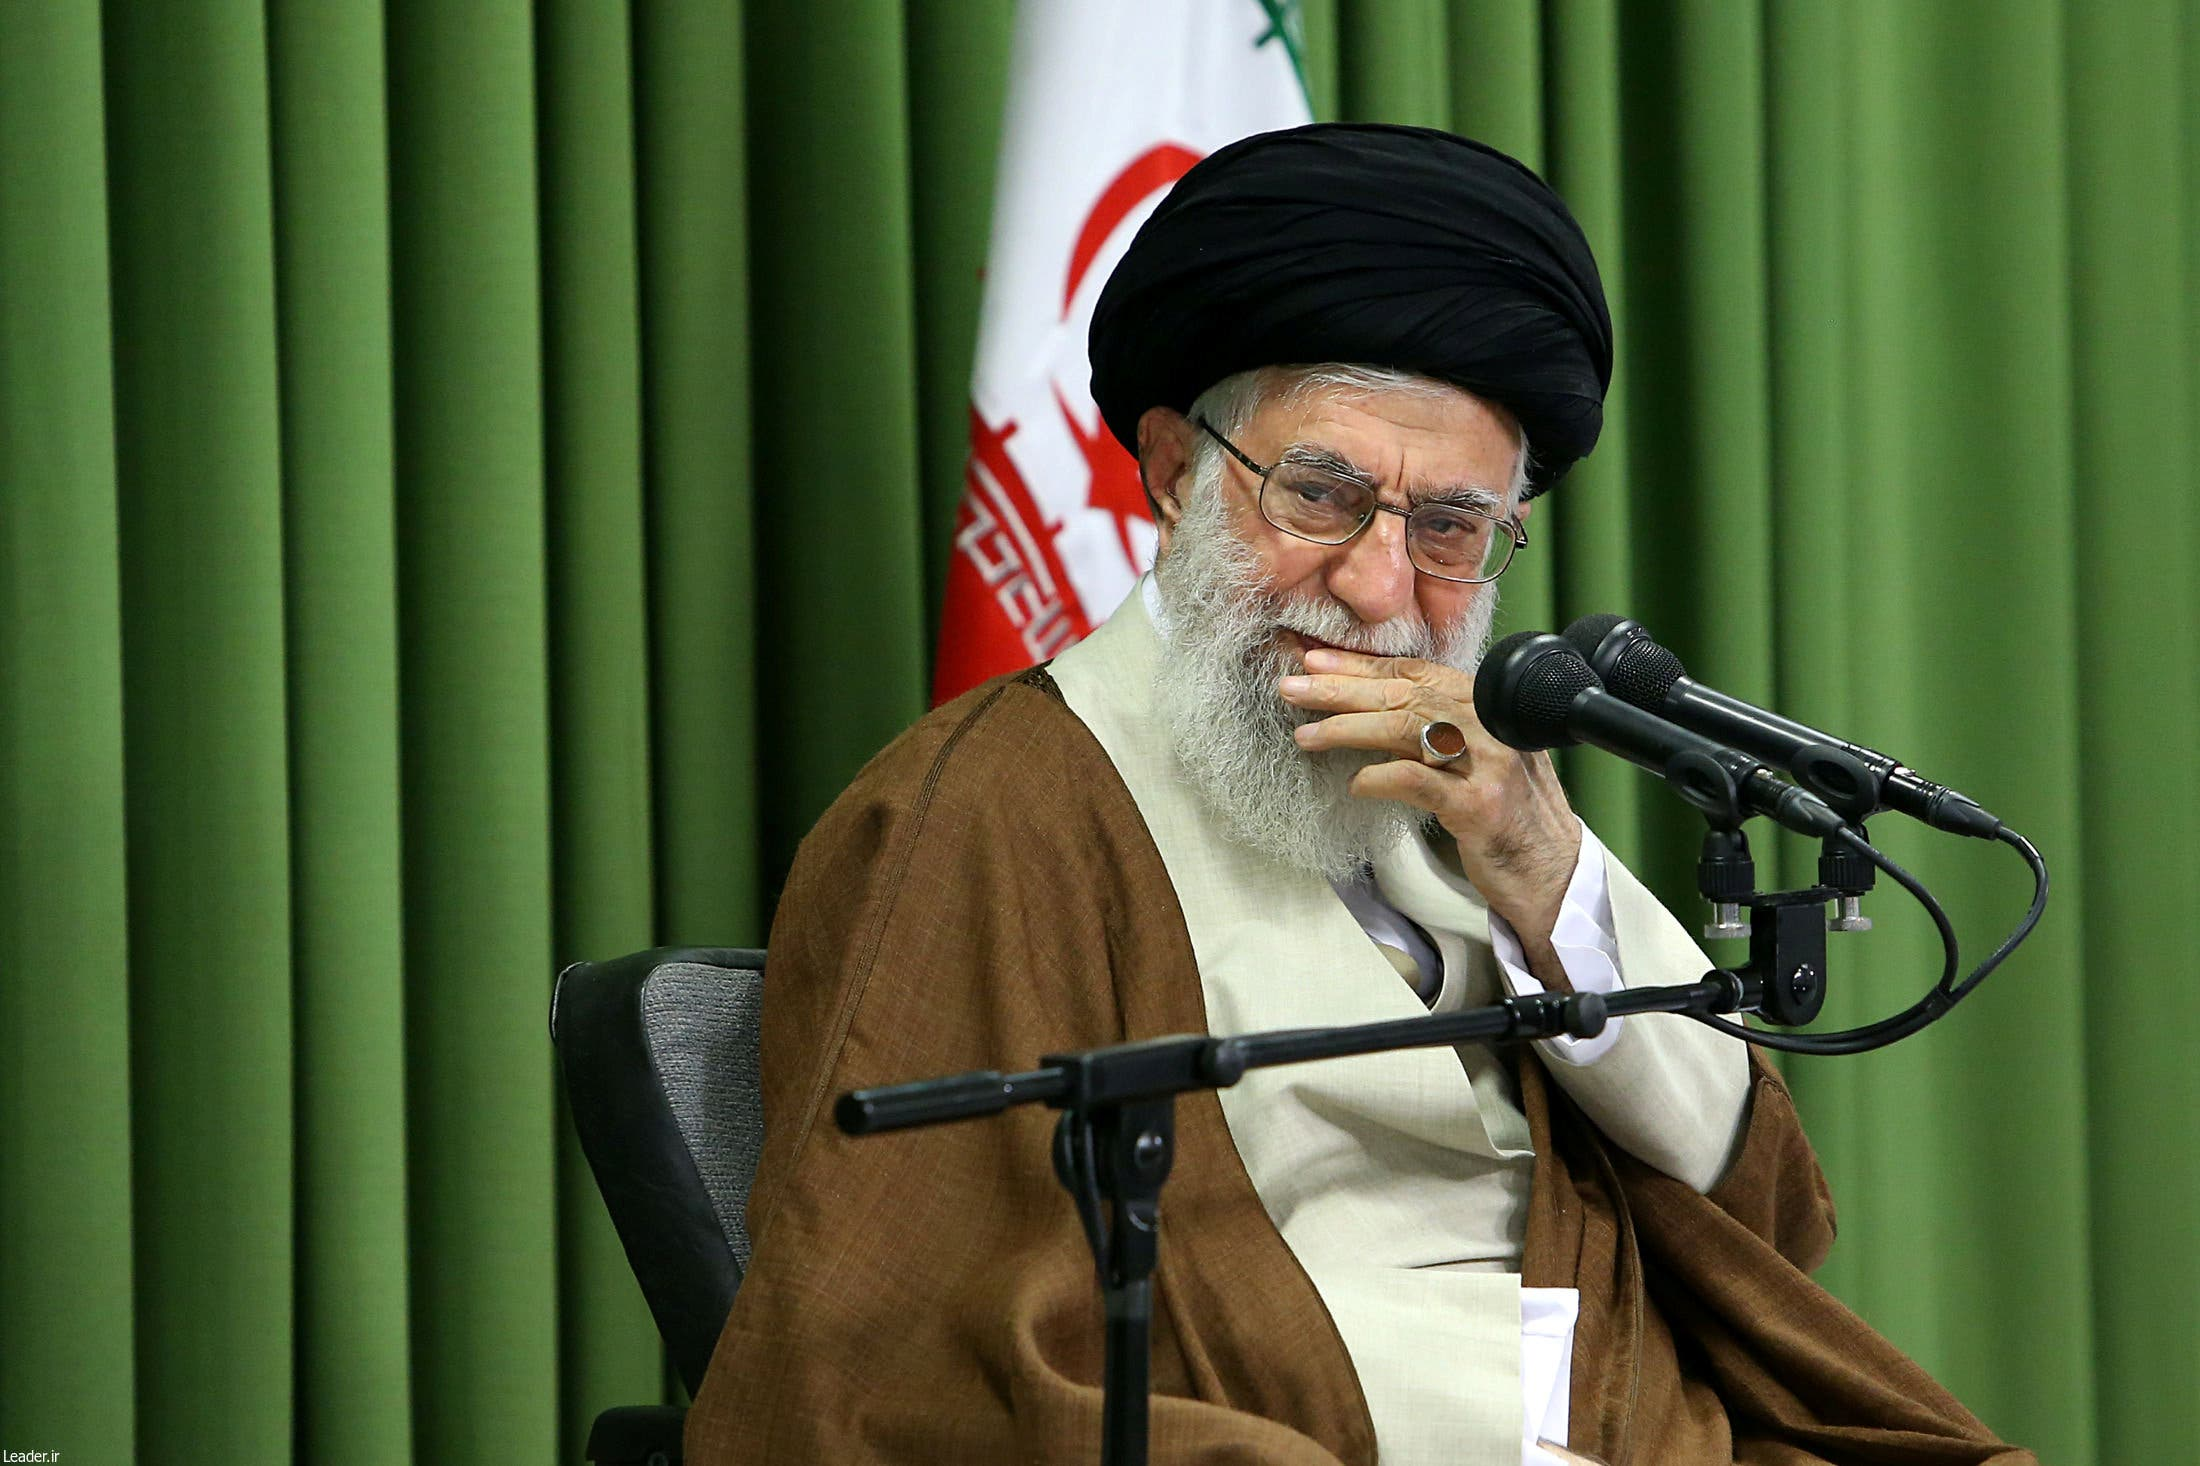 Iran's Supreme Leader Ayatollah Ali Khamenei attends a meeting with students in Tehran, Iran, October 18, 2017. Leader.ir/Handout via REUTERS ATTENTION EDITORS - THIS IMAGE WAS PROVIDED BY A THIRD PARTY. NO RESALES. NO ARCHIVE.